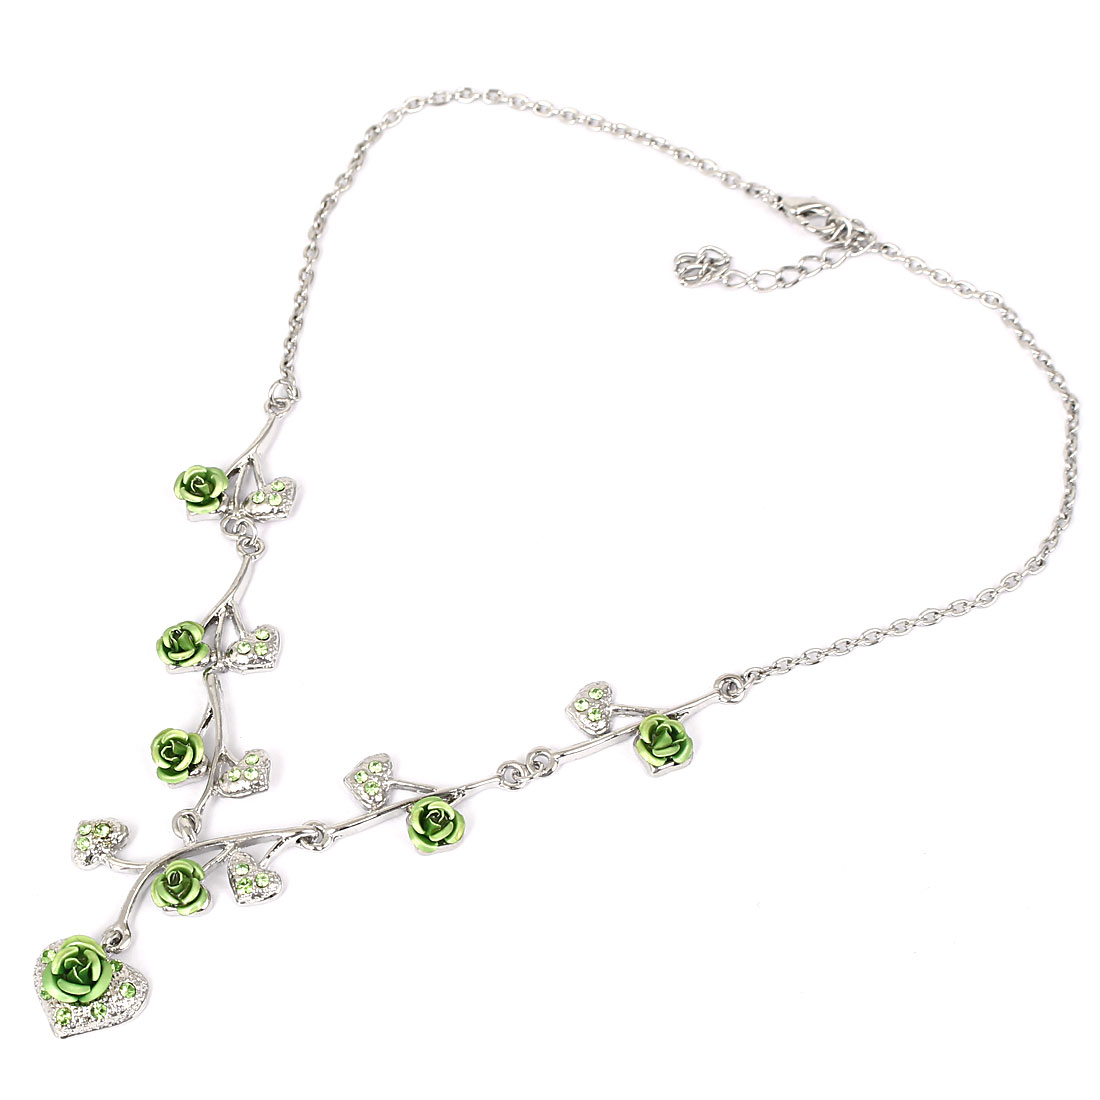 Girl Lady Fashion Jewelry Rose Flower Crystal Heart Pendant Necklace Light Green